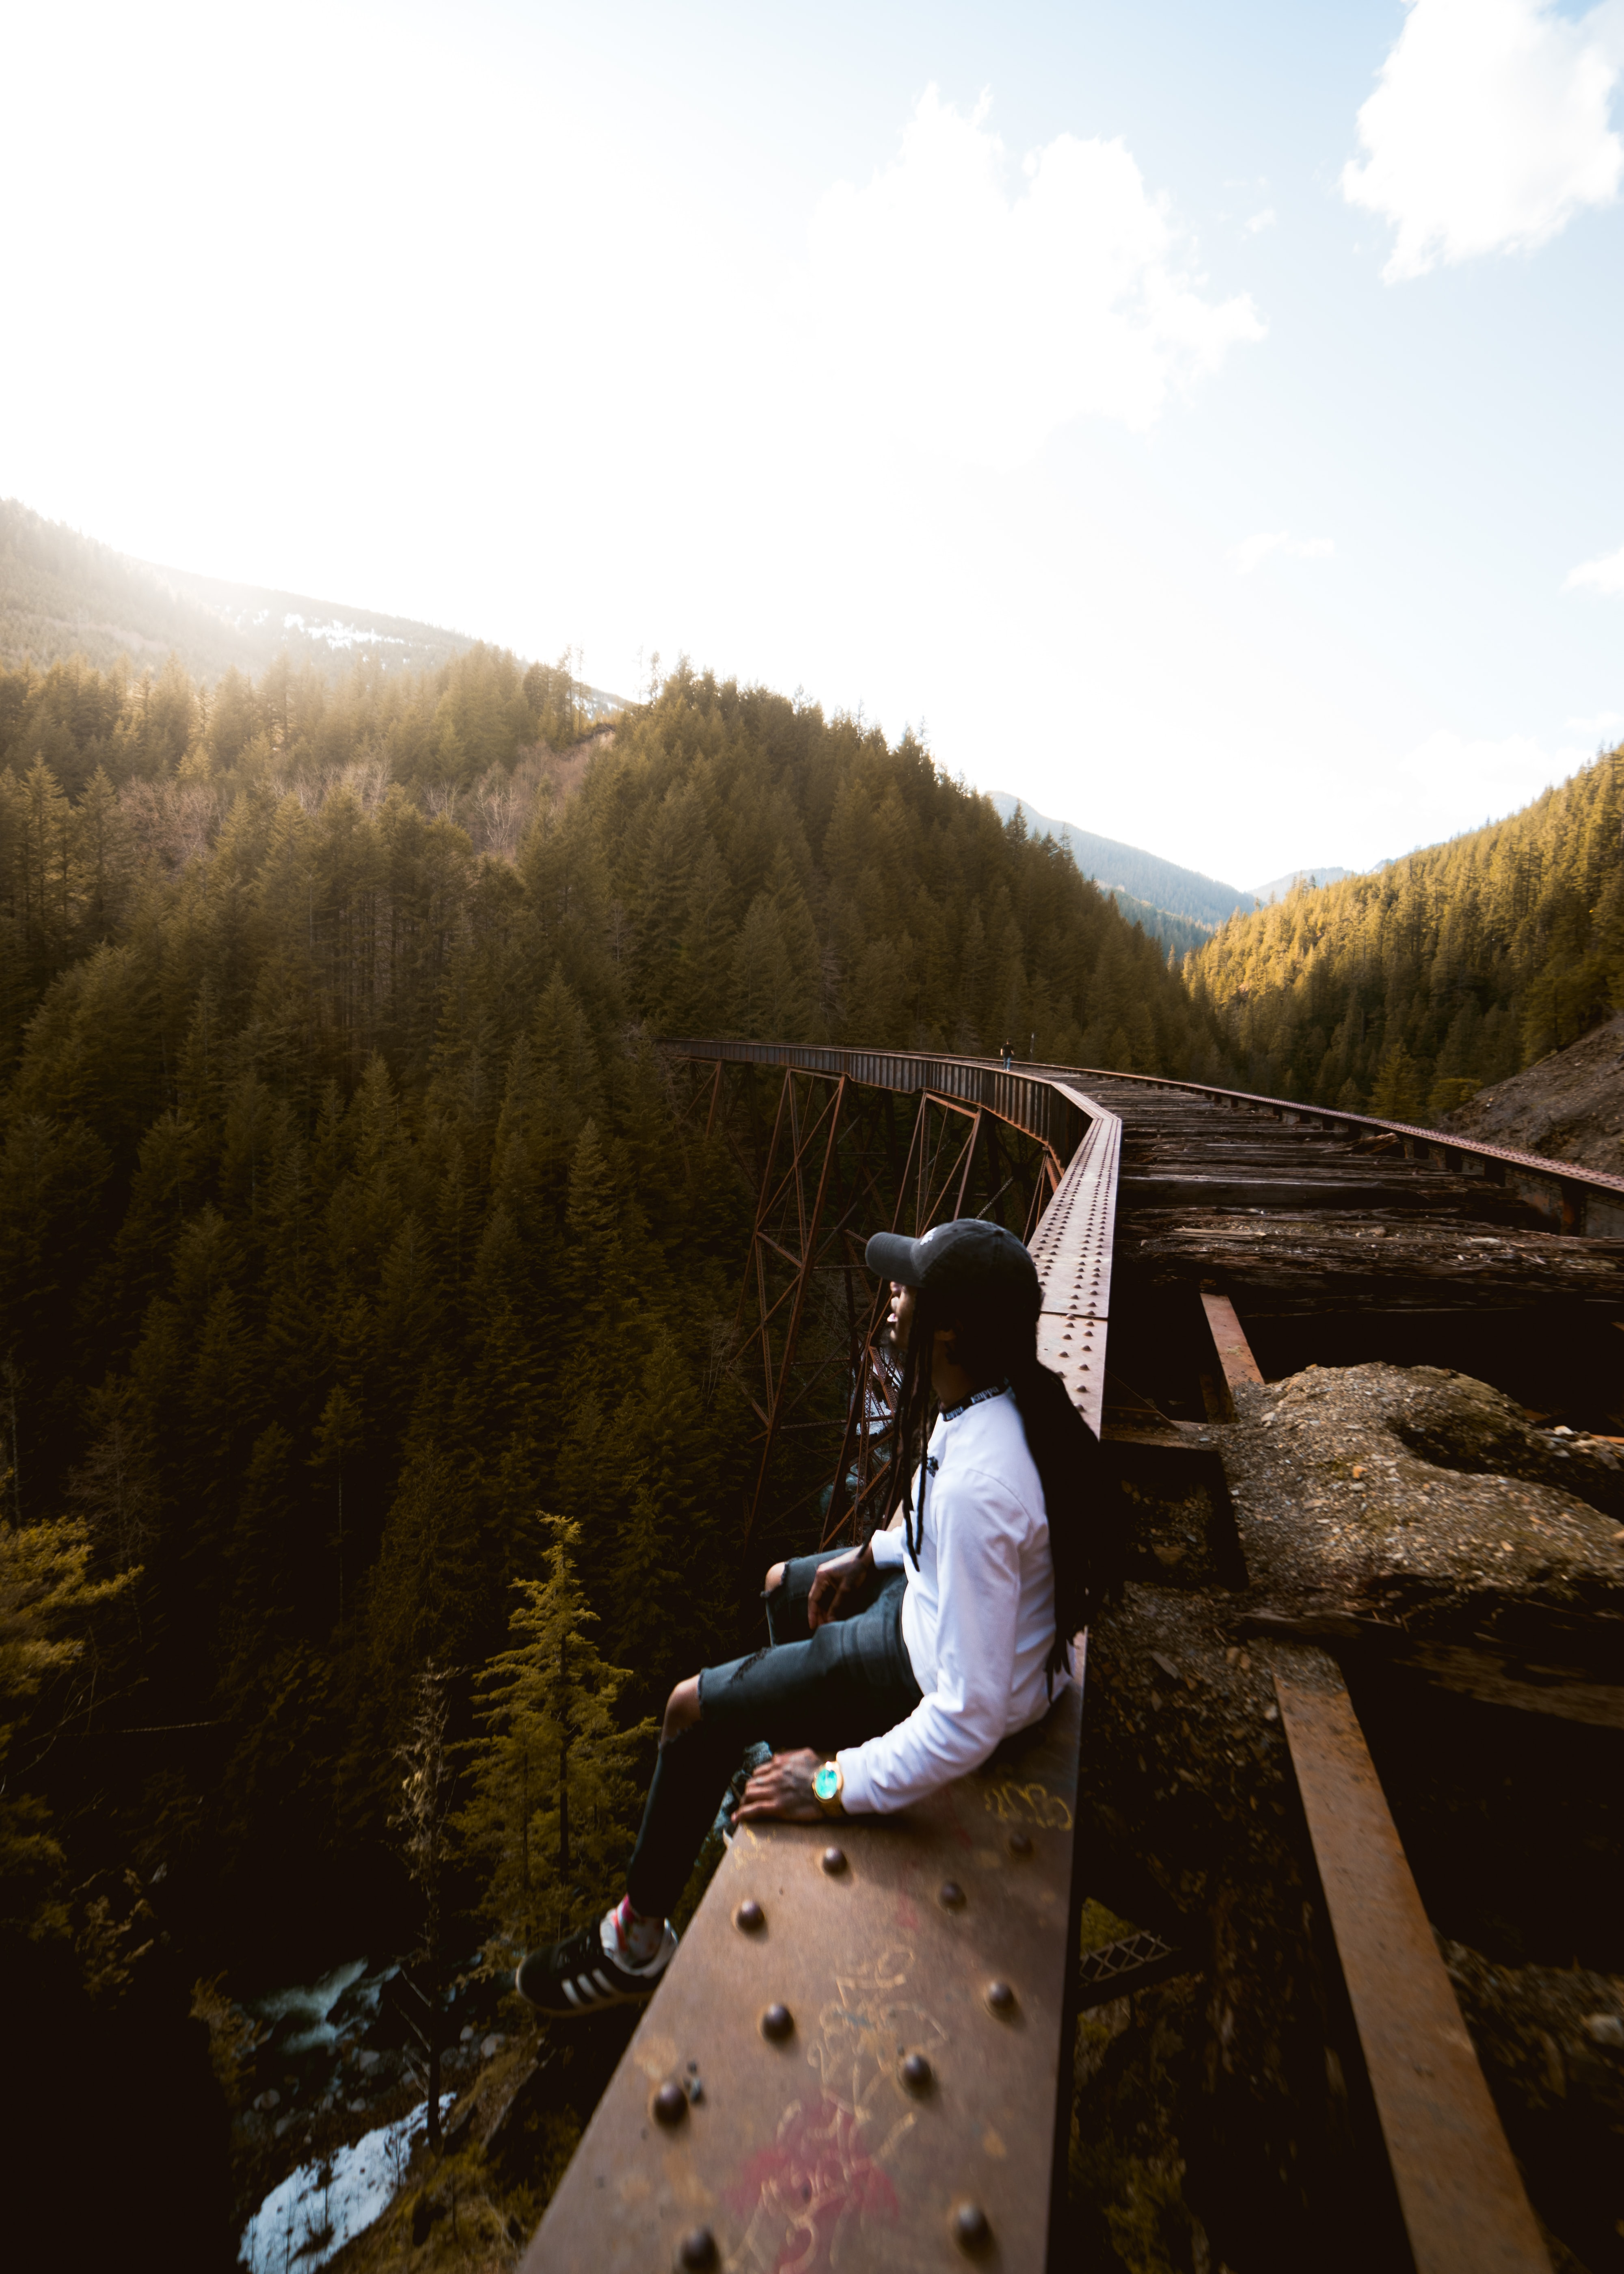 person sitting beside train rail and facing pine trees